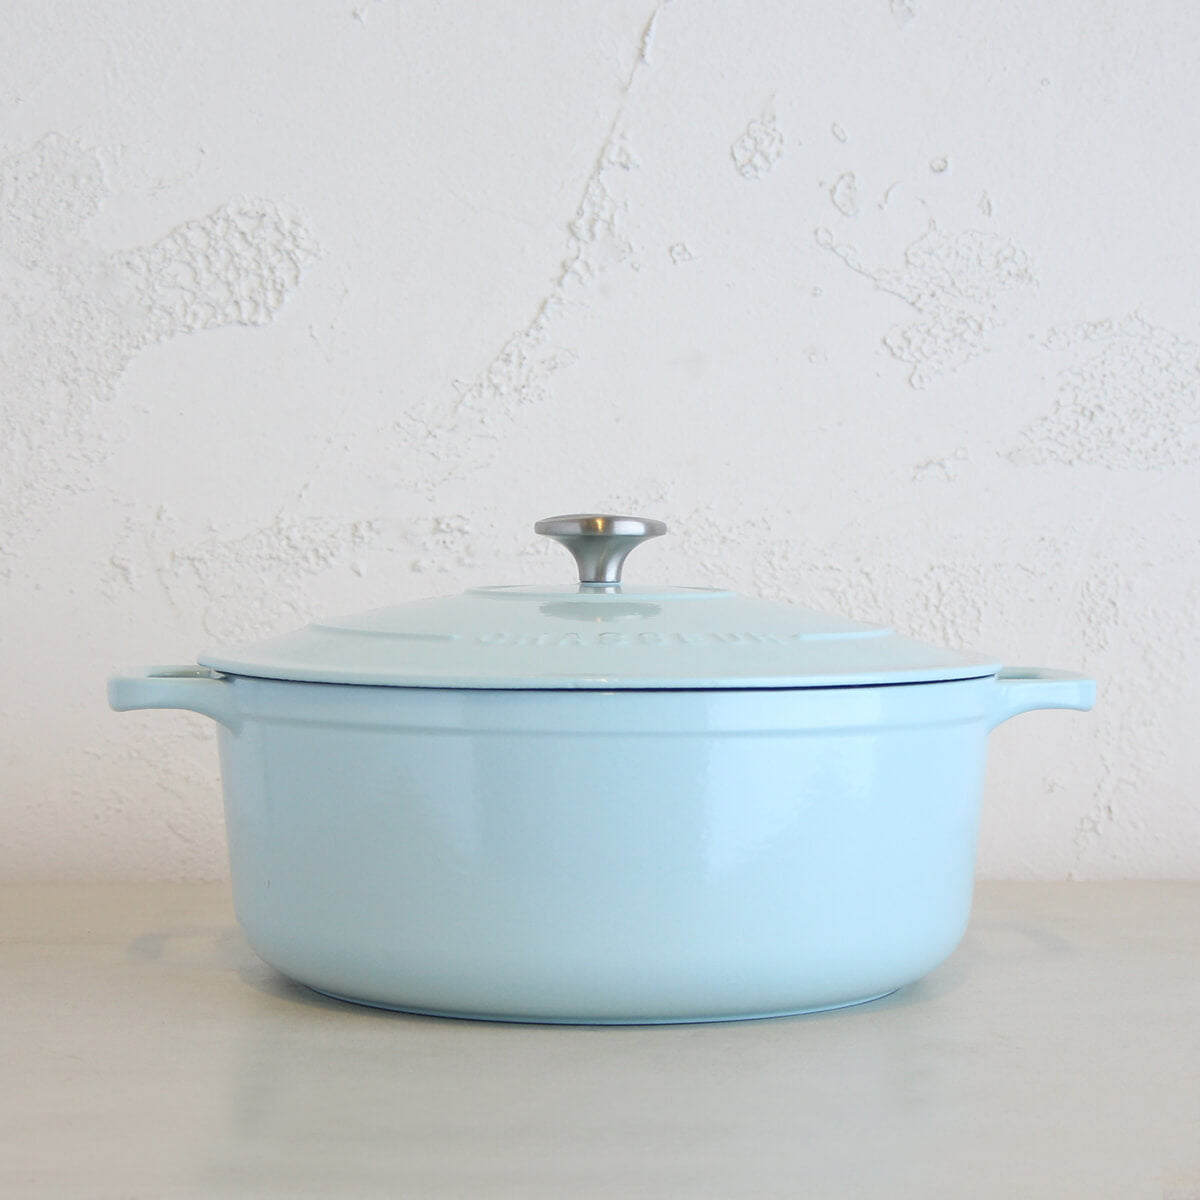 CHASSEUR  |  ROUND FRENCH OVEN  |  DUCK EGG BLUE  |   FRENCH ENAMEL COOKWARE